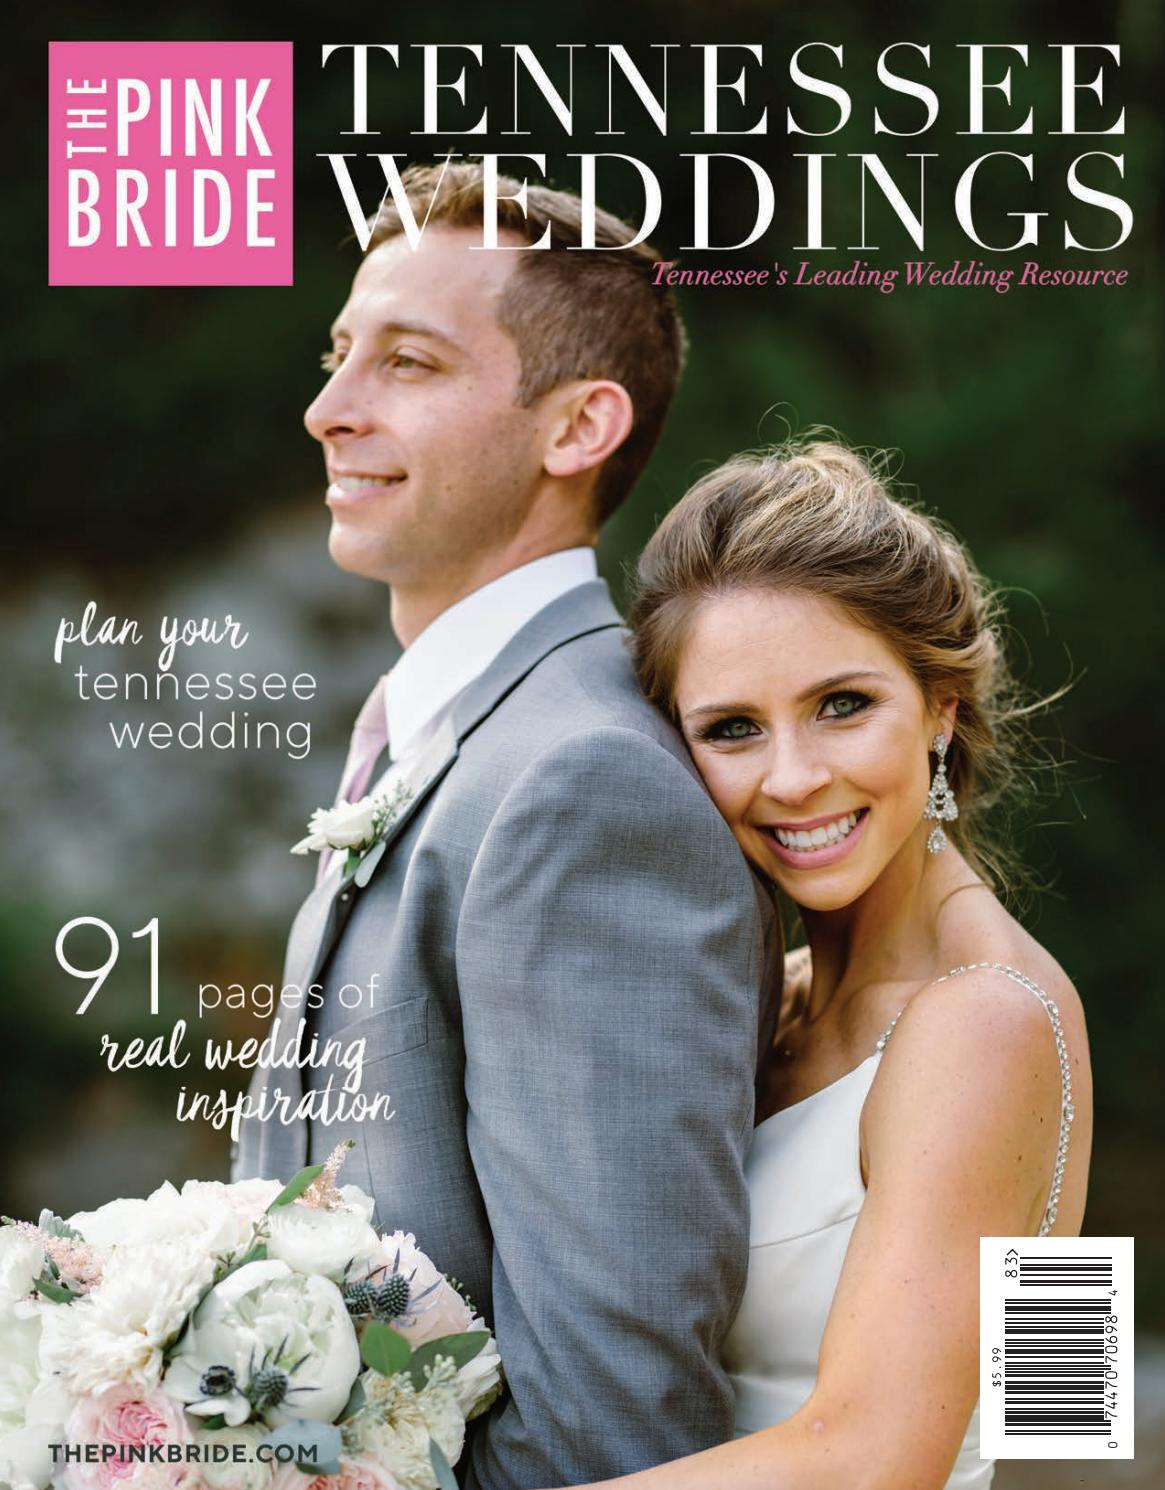 Tennessee Weddings By The Pink Bride Issuu